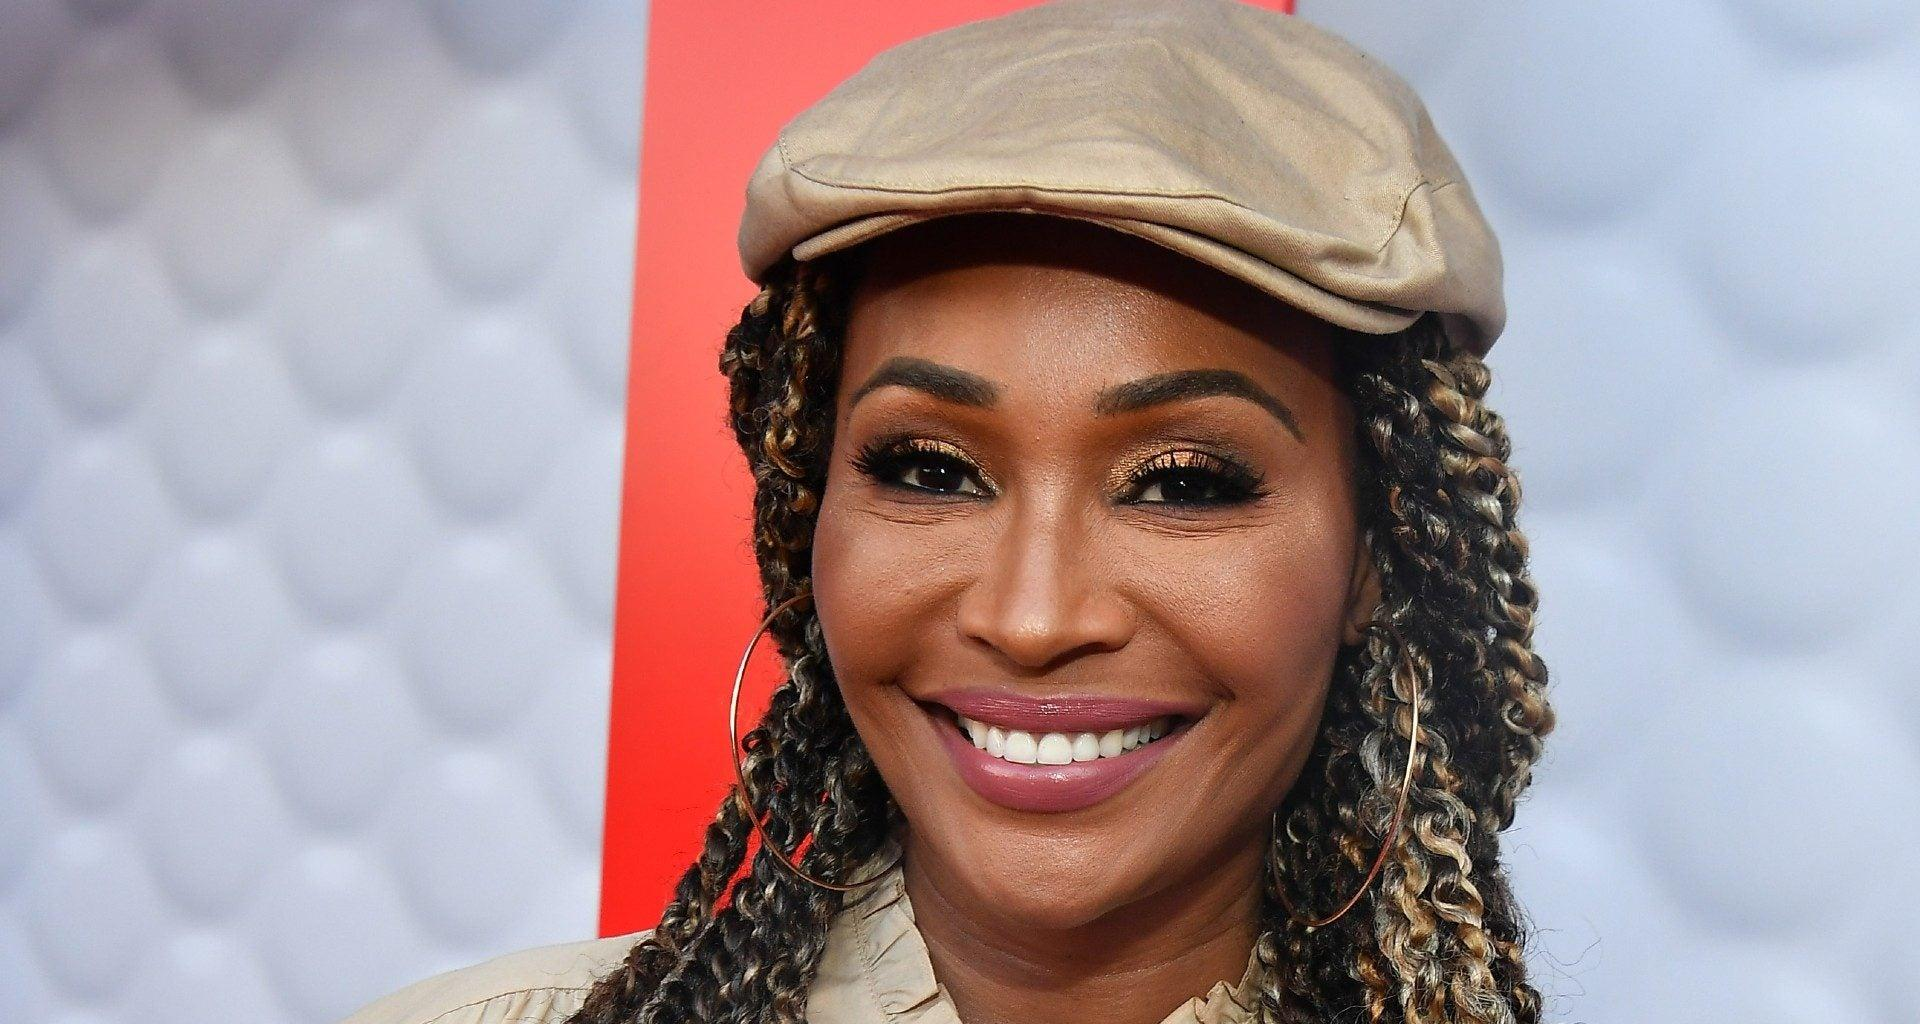 Cynthia Bailey Celebrates The Birthday Of Her Mother - See Her Emotional Post